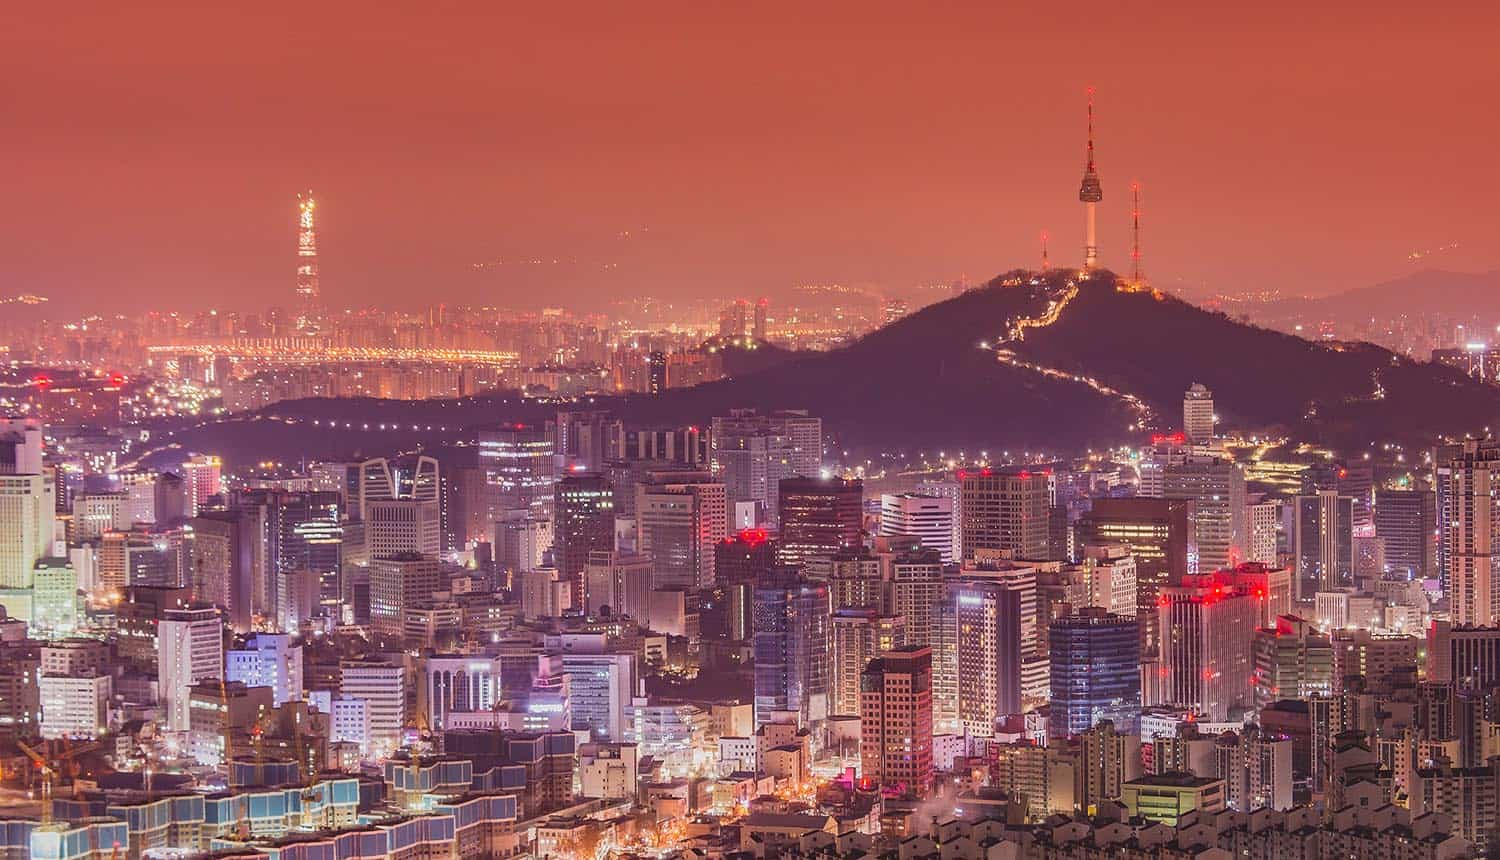 Downtown skyline of Seoul, South Korea with Seoul Tower showing the cyber attack on the South Korea defense agency